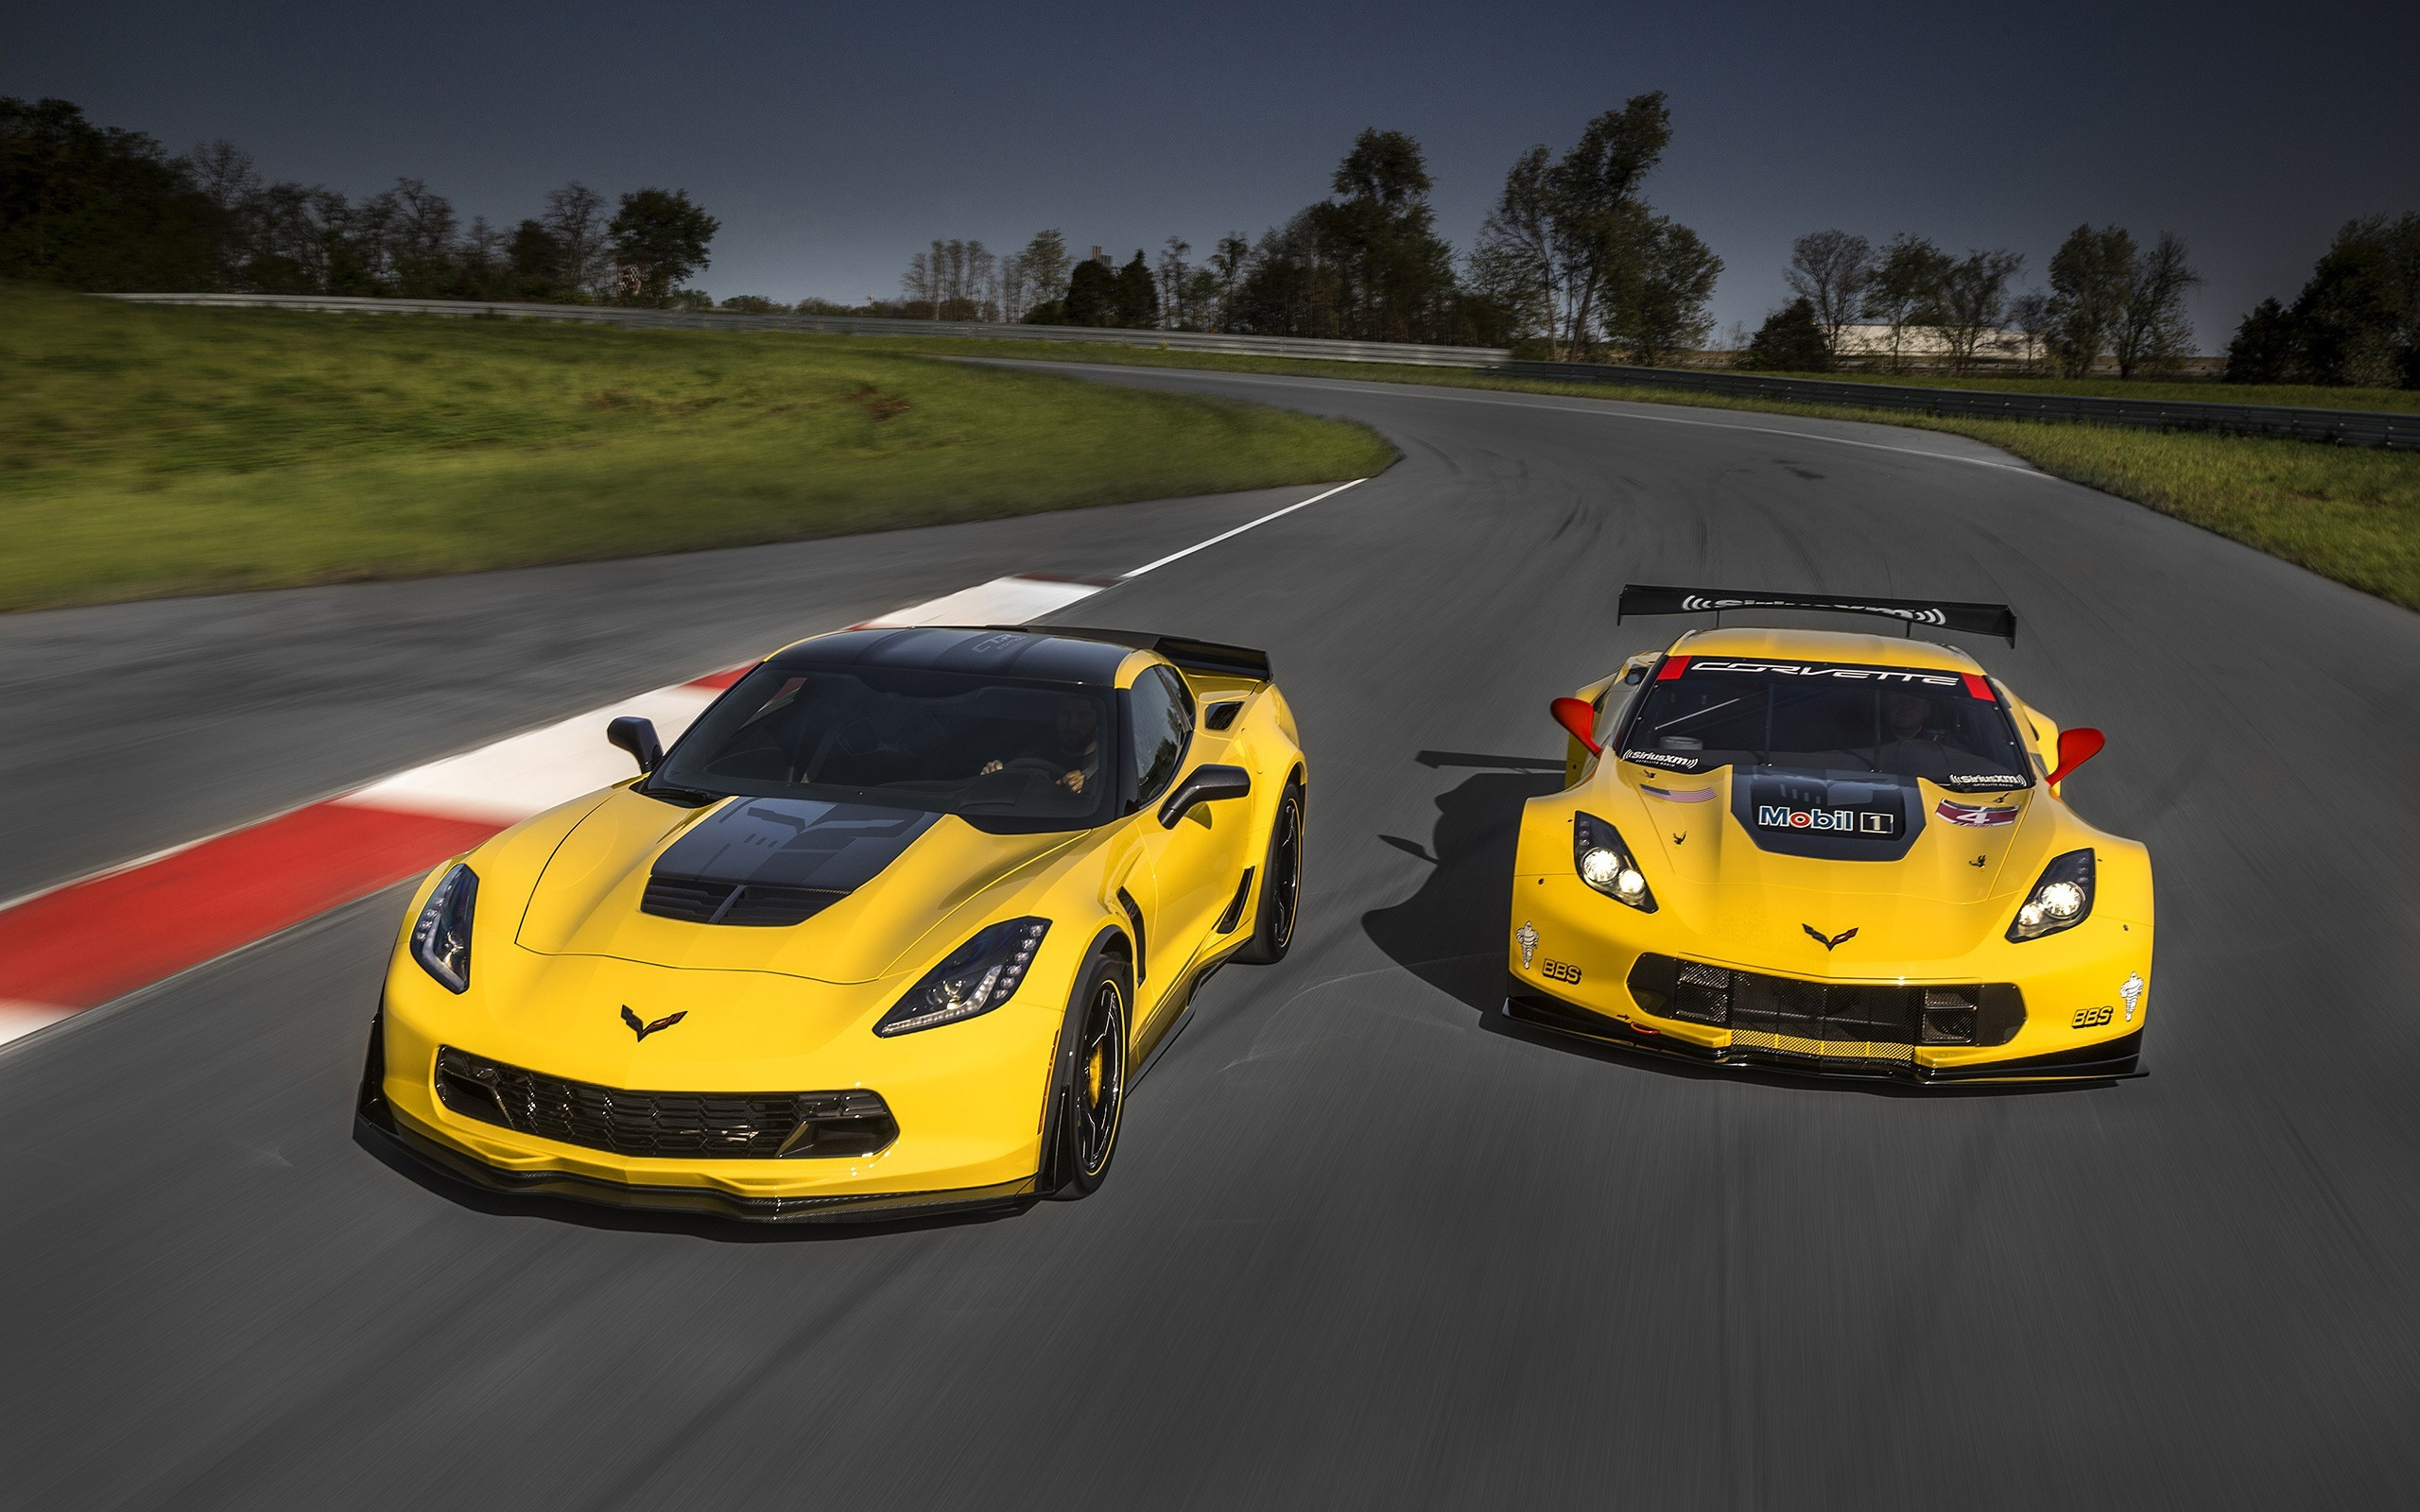 2560x1600 car, Chevrolet Corvette Z06, Chevrolet Corvette C7, Race Tracks Wallpapers  HD / Desktop and Mobile Backgrounds